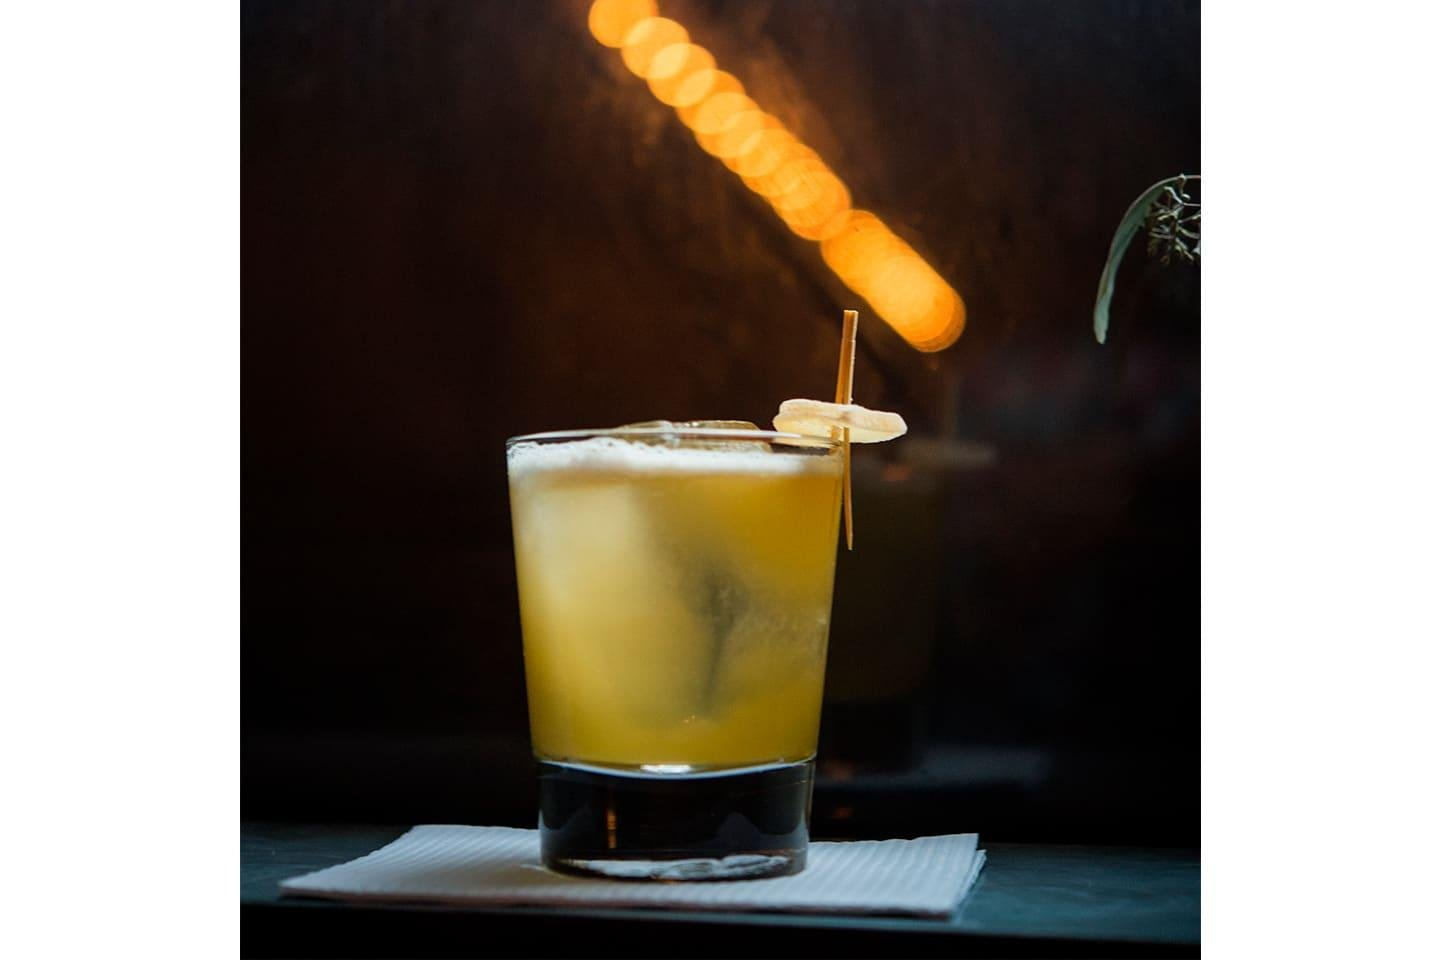 Attaboy, Penicillin cocktail